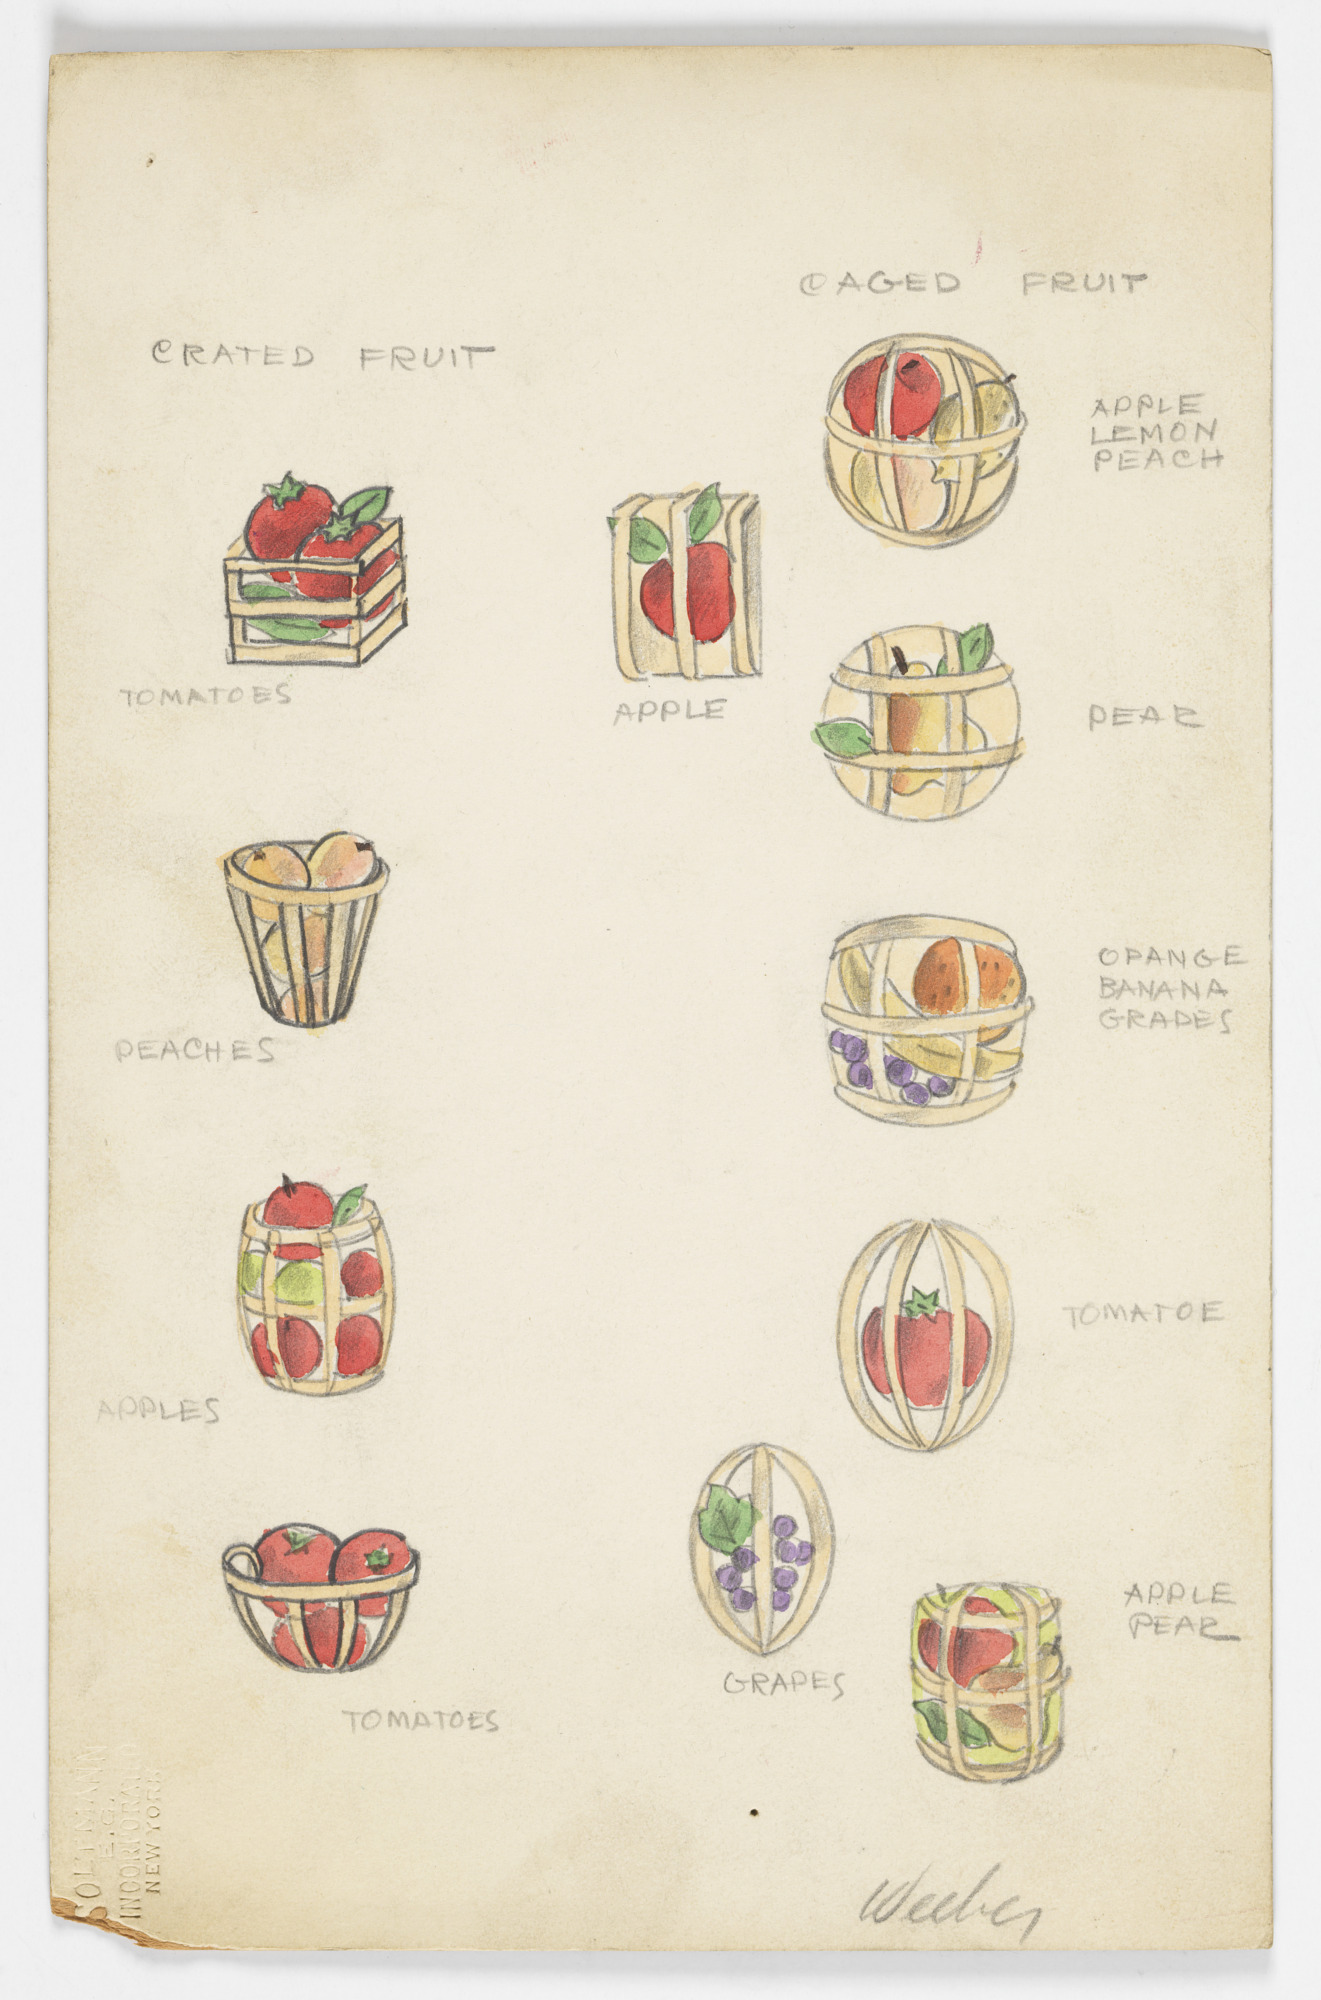 Button Design: Crated Fruits and Caged Fruits